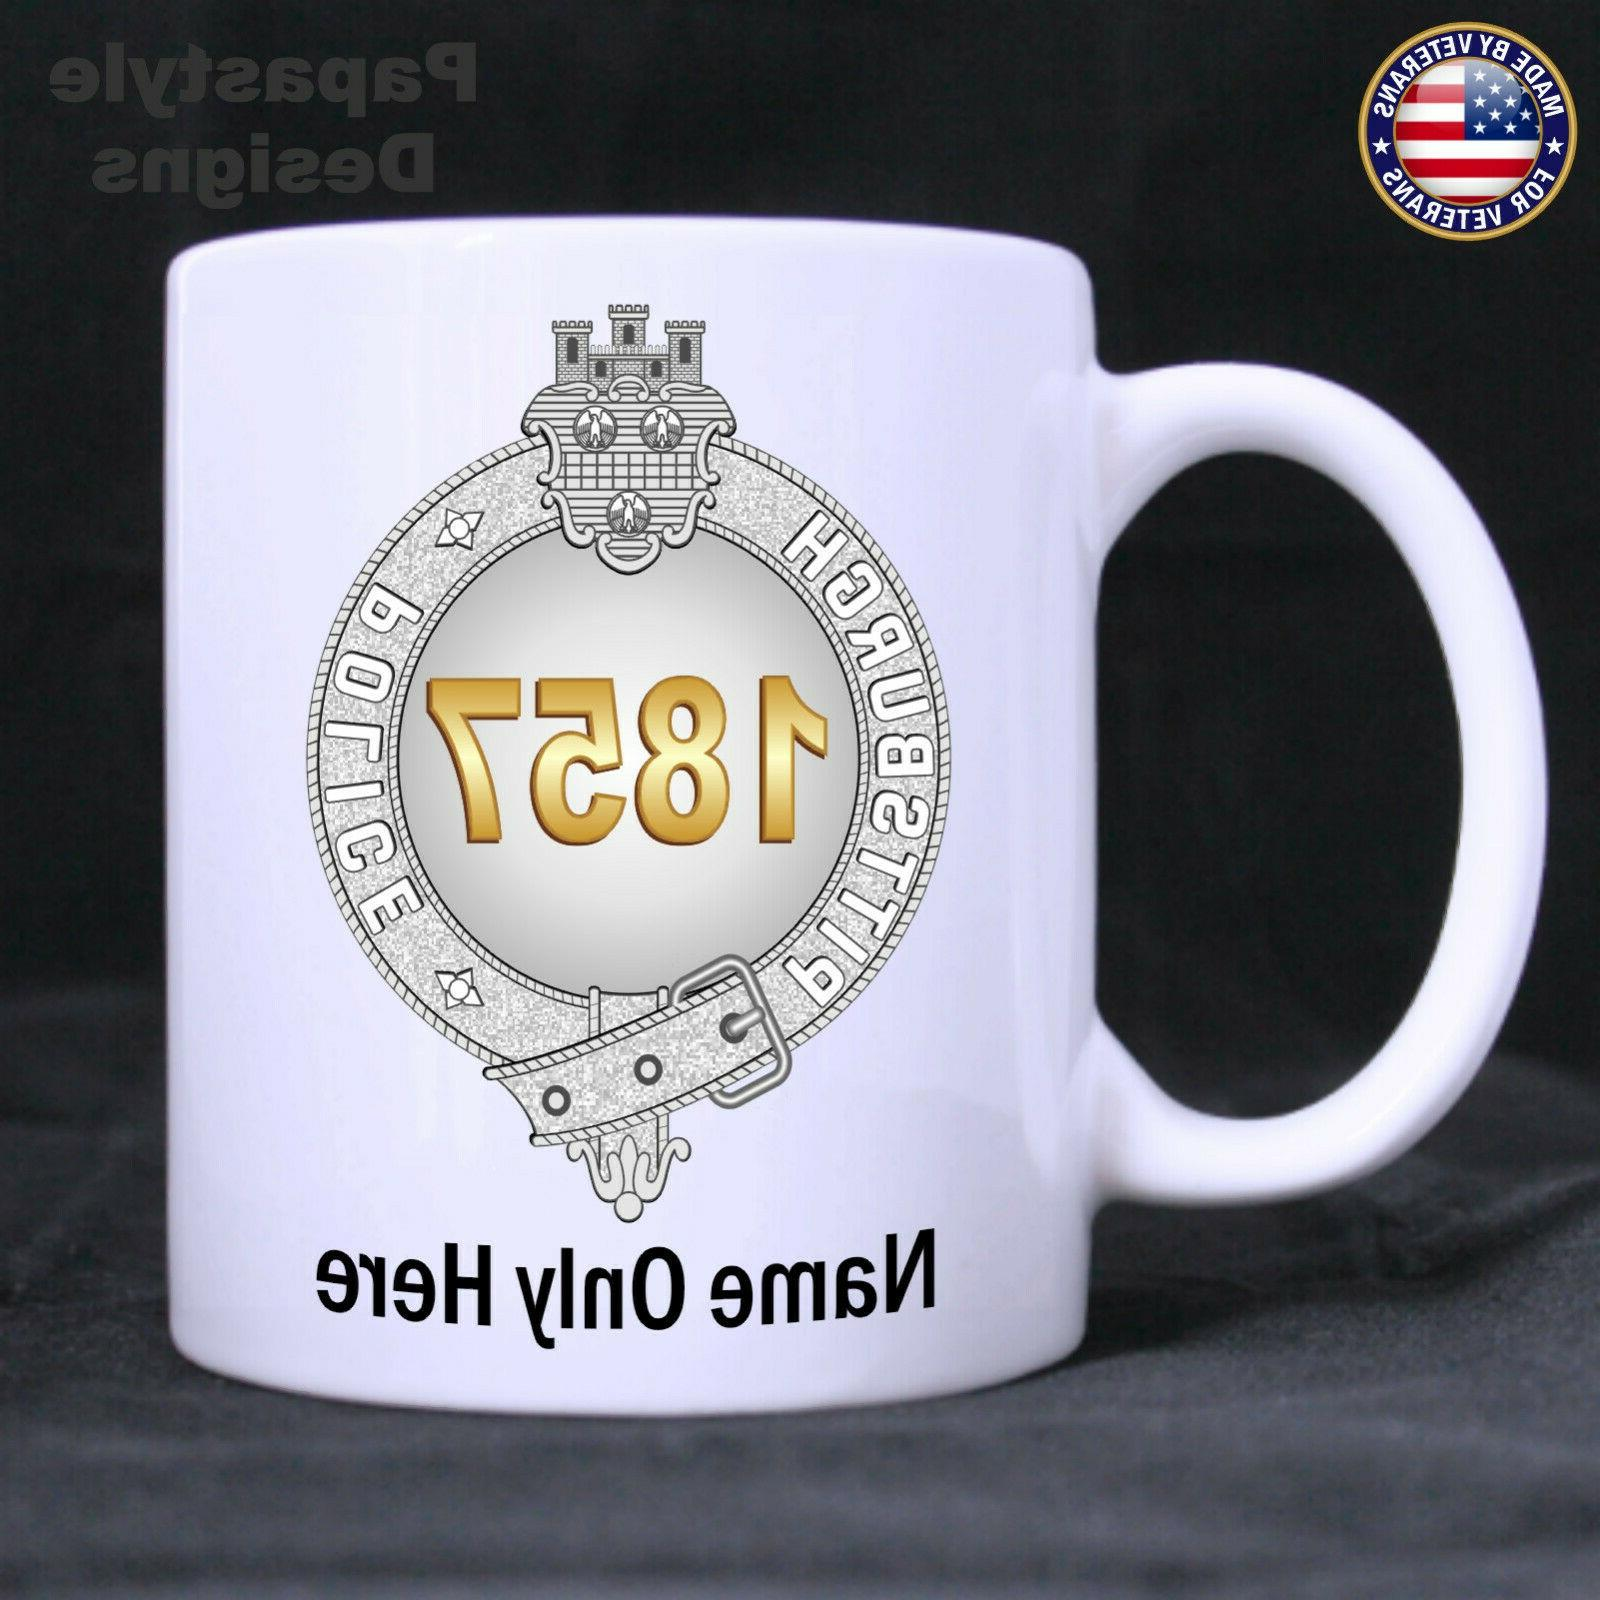 pittsburgh police officer personalized 11oz coffee mug